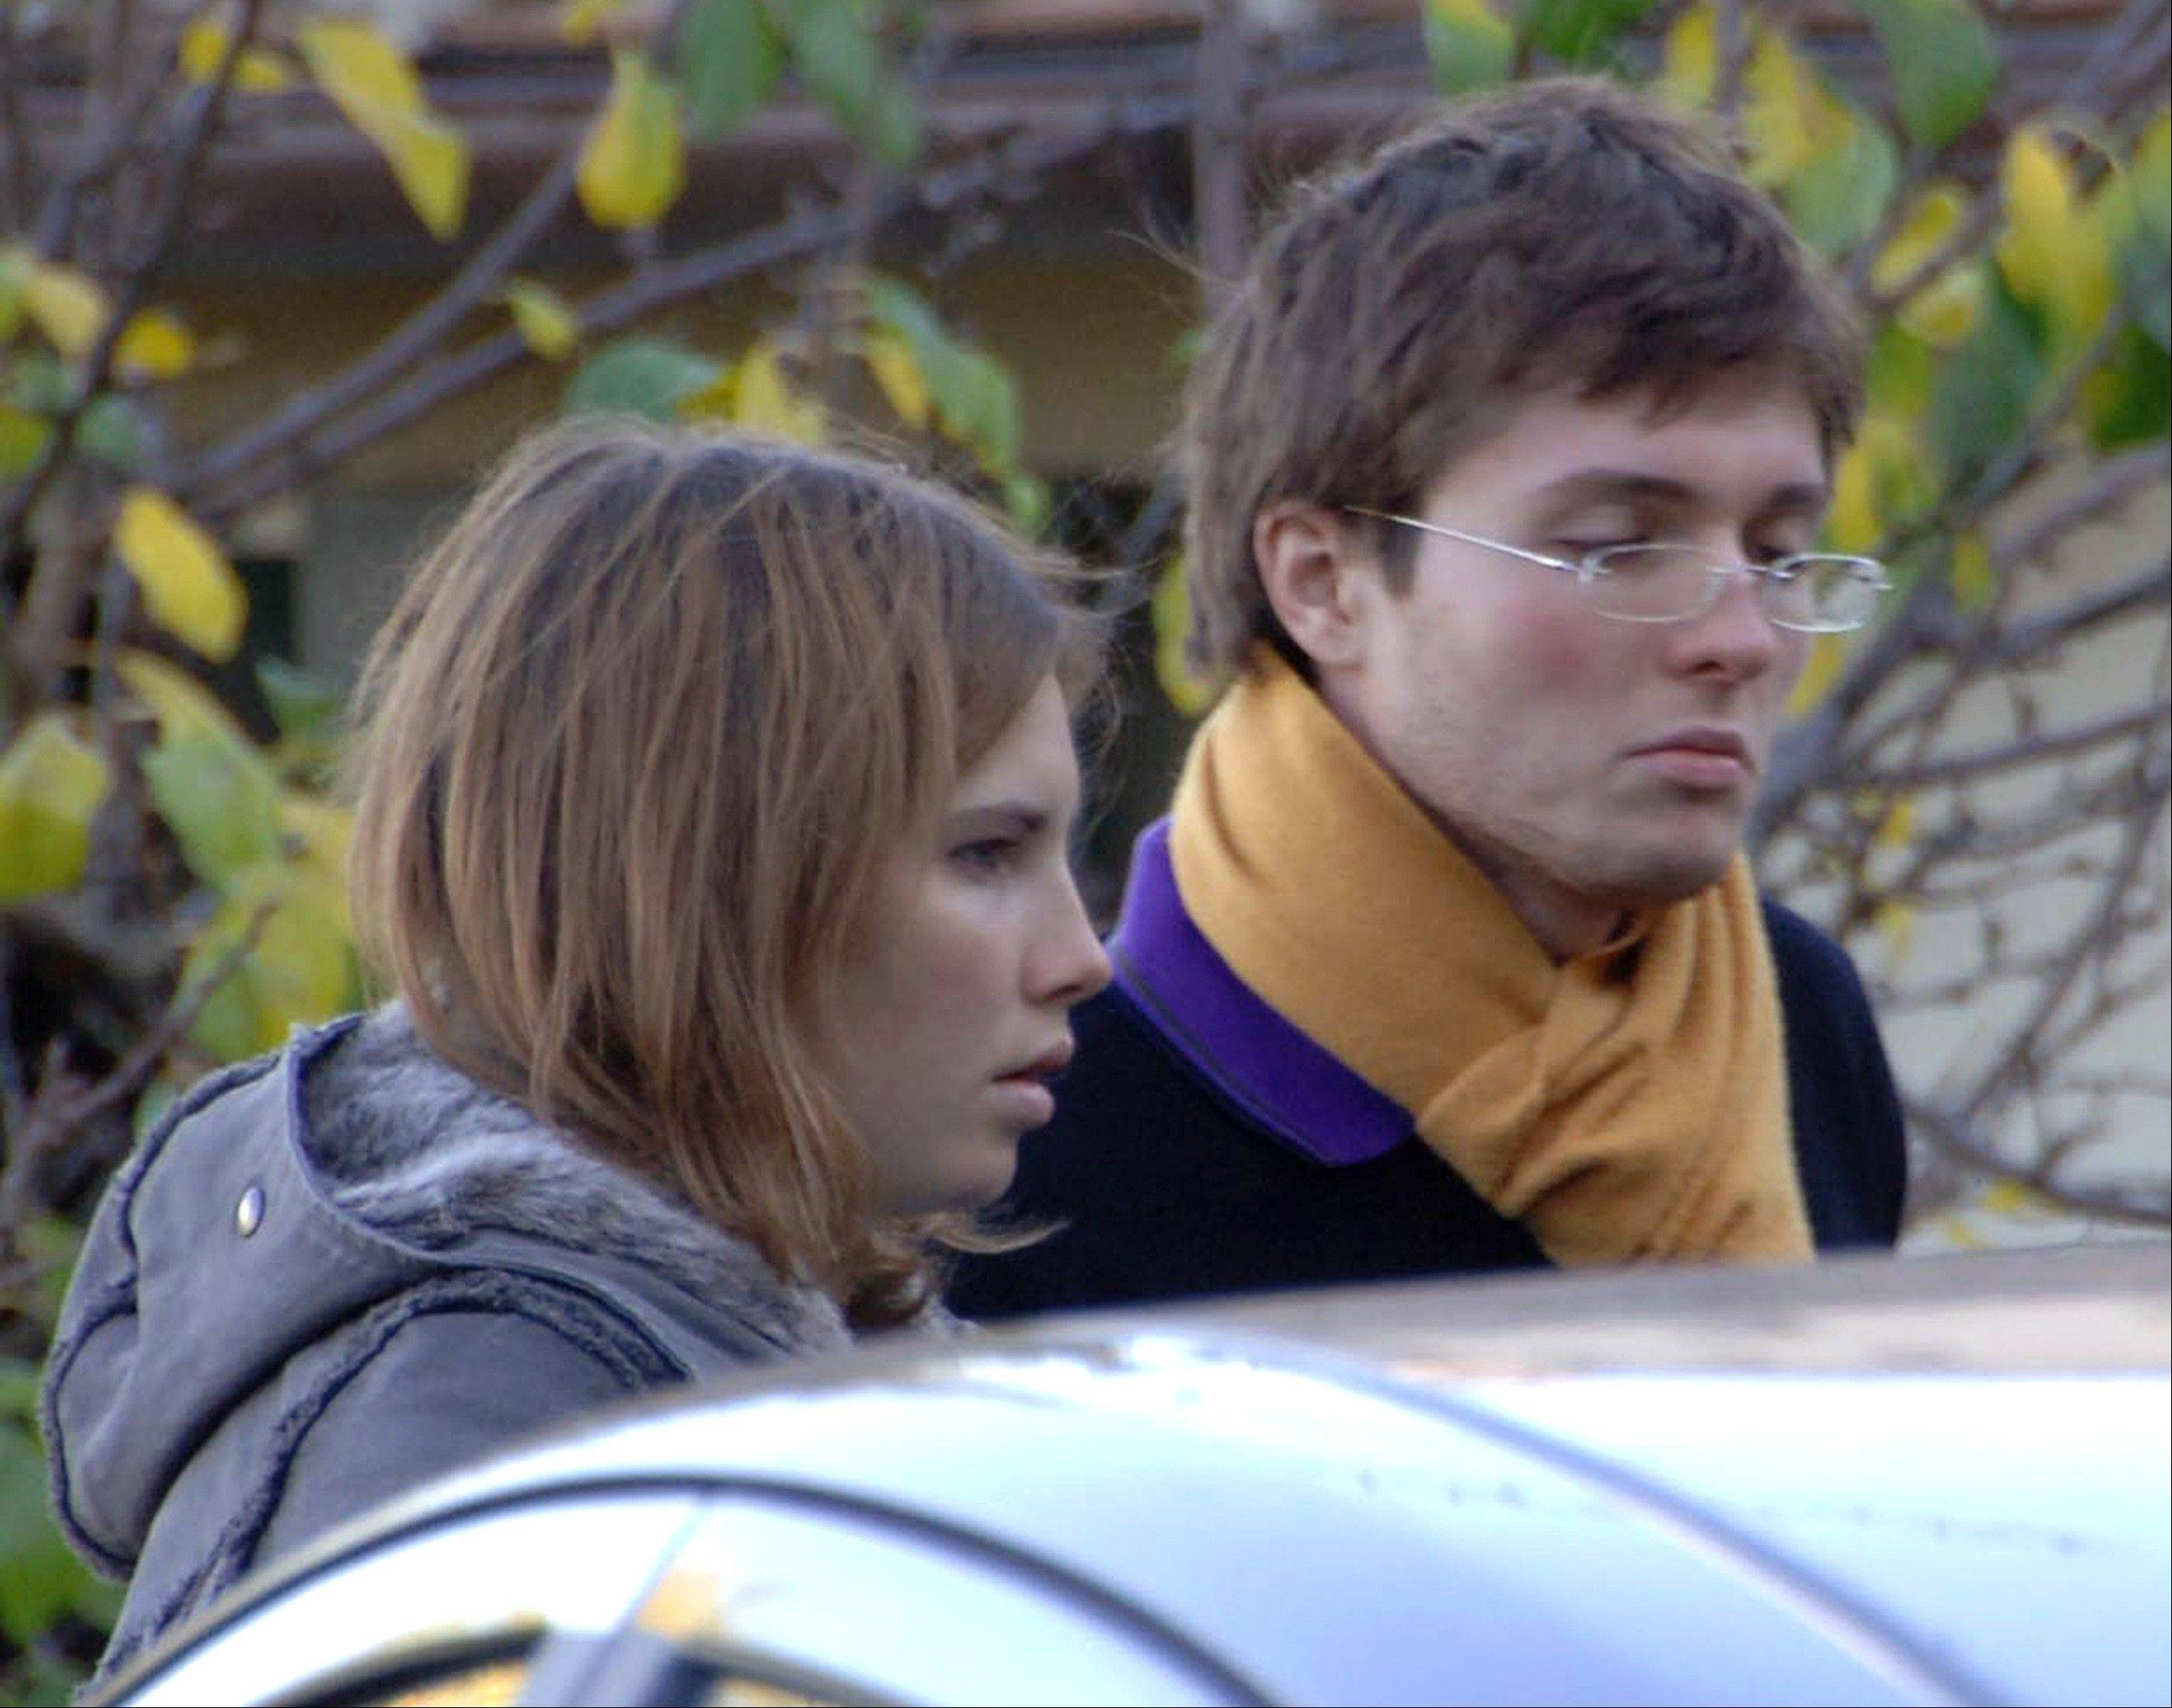 Amanda Knox, of Seattle, and her then-boyfriend Raffaele Sollecito, of Italy, outside the rented house in 2007 where 21-year-old British student Meredith Kercher was found dead in Perugia, Italy. The Court of Cassation on Monday is considering prosecutors' contentions that the 2011 acquittals of Knox and Sollecito in the murder of Kercher should be thrown out and a new trial ordered.